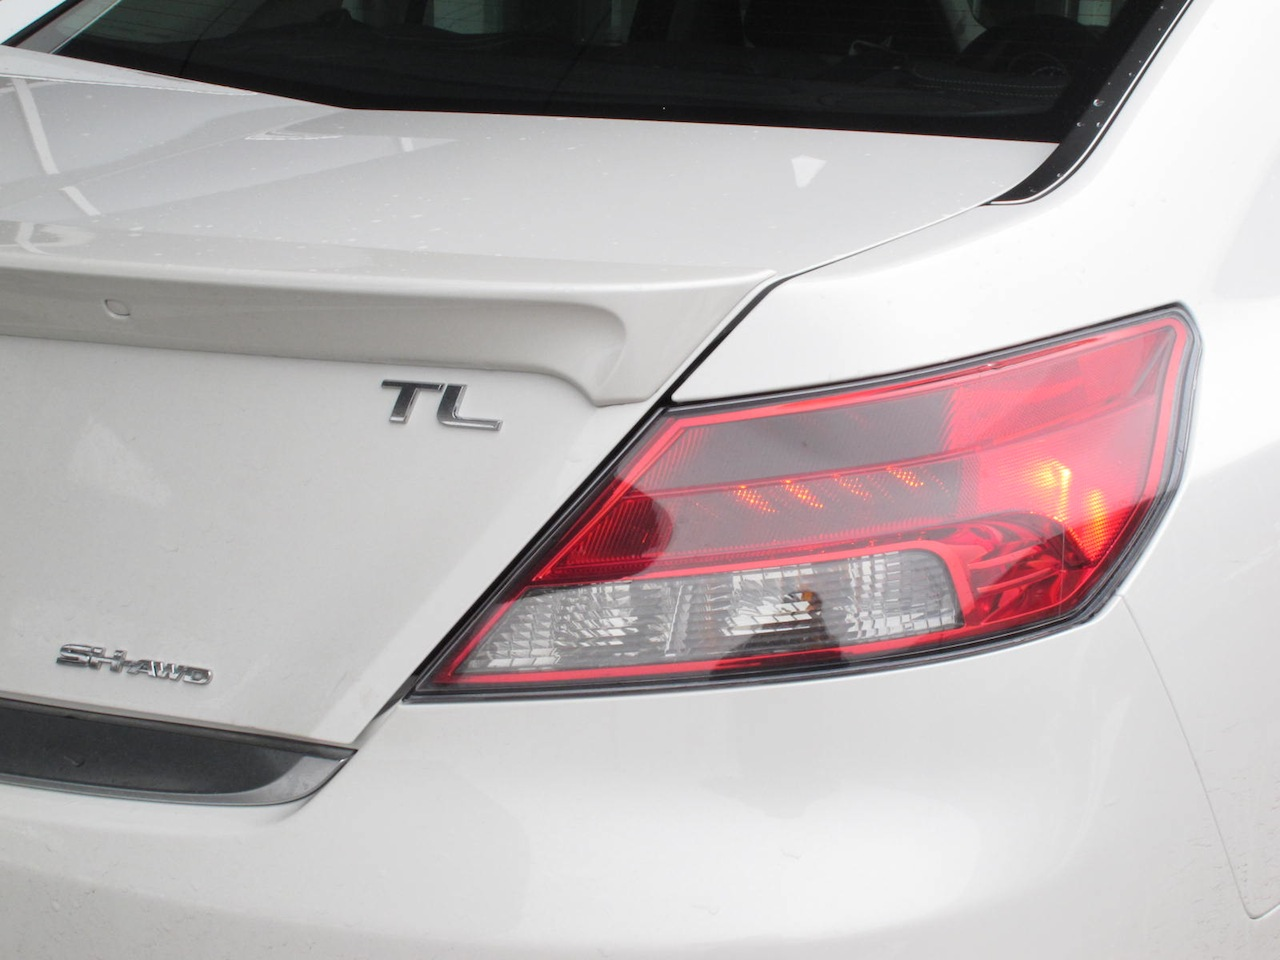 Acura TL SHAWD Review Cars Photos Test Drives And Reviews - Acura tl taillights